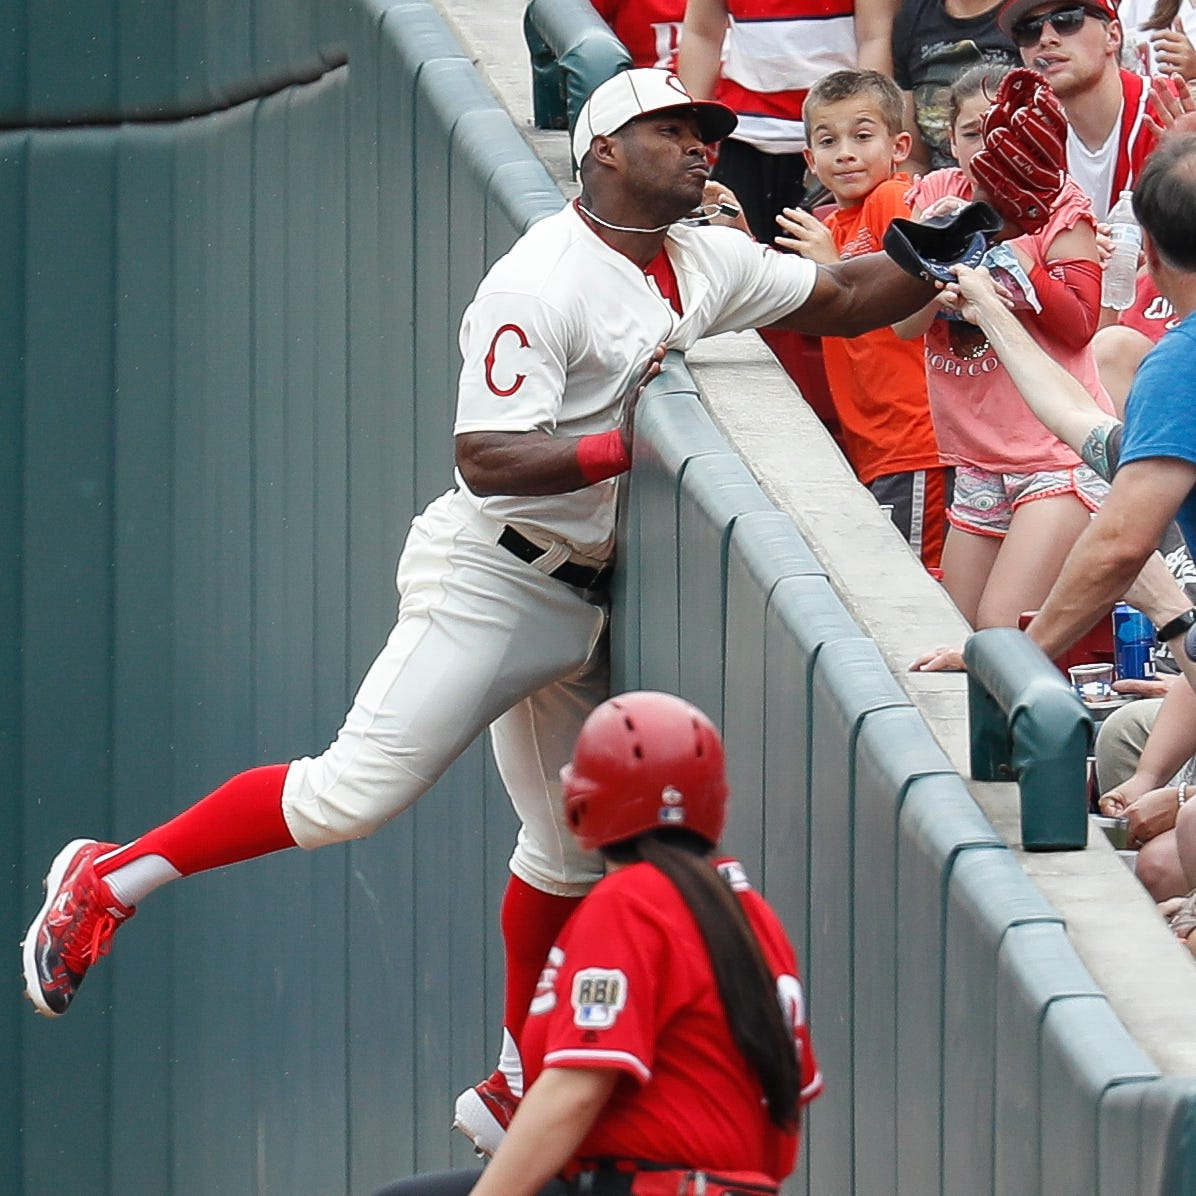 Cincinnati Reds' Yasiel Puig left game with shoulder sprain, hopes to avoid IL stint